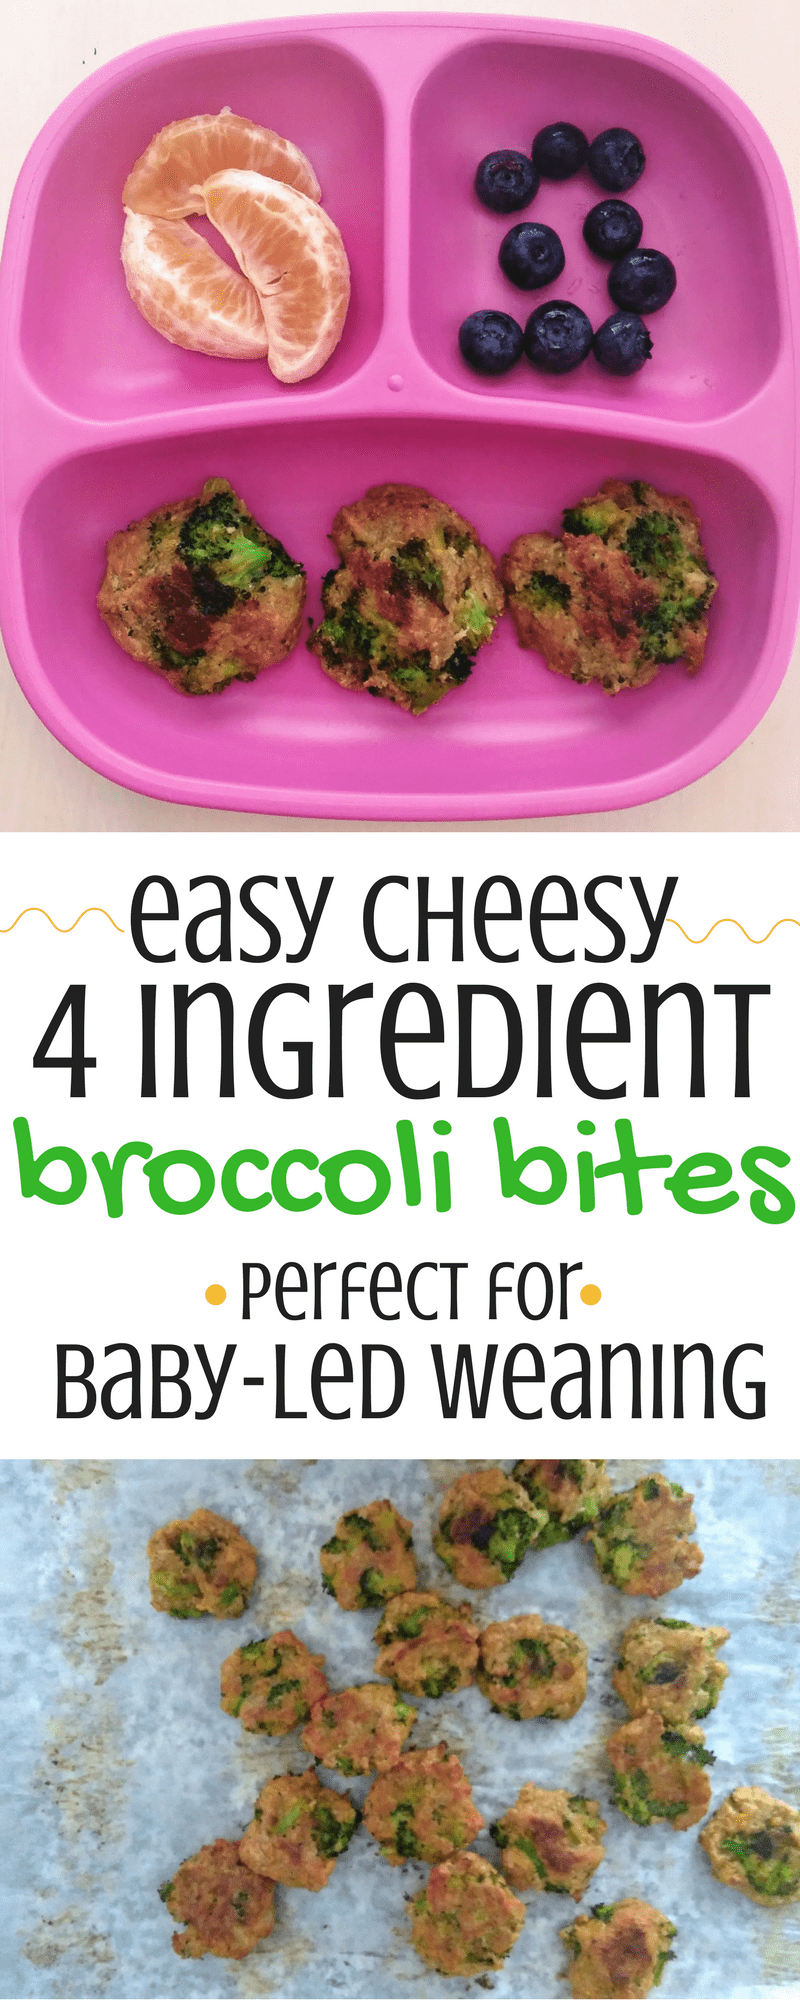 Easy Cheesy 4 Ingredient Broccoli Bites